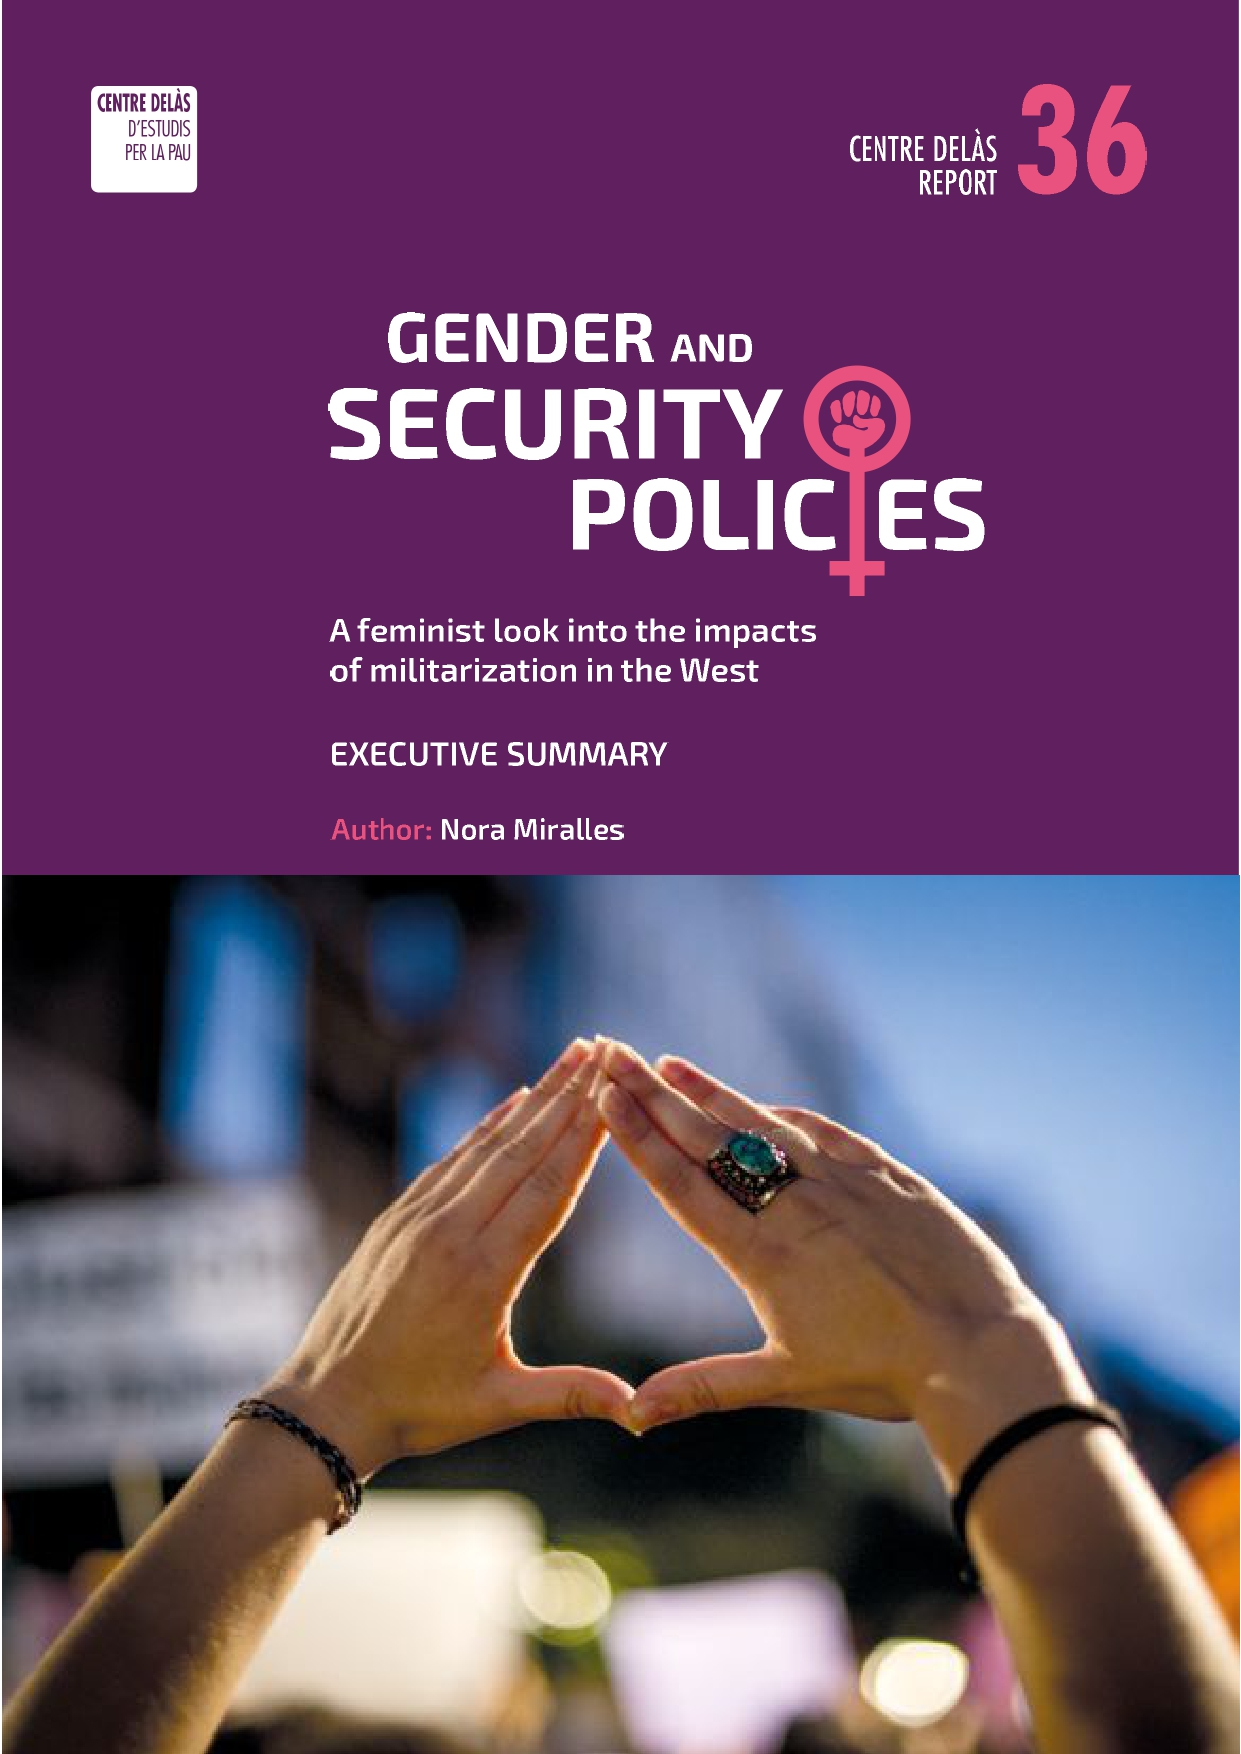 Report 36: Gender and security policies. A feminist look into the impacts of militarization in the West